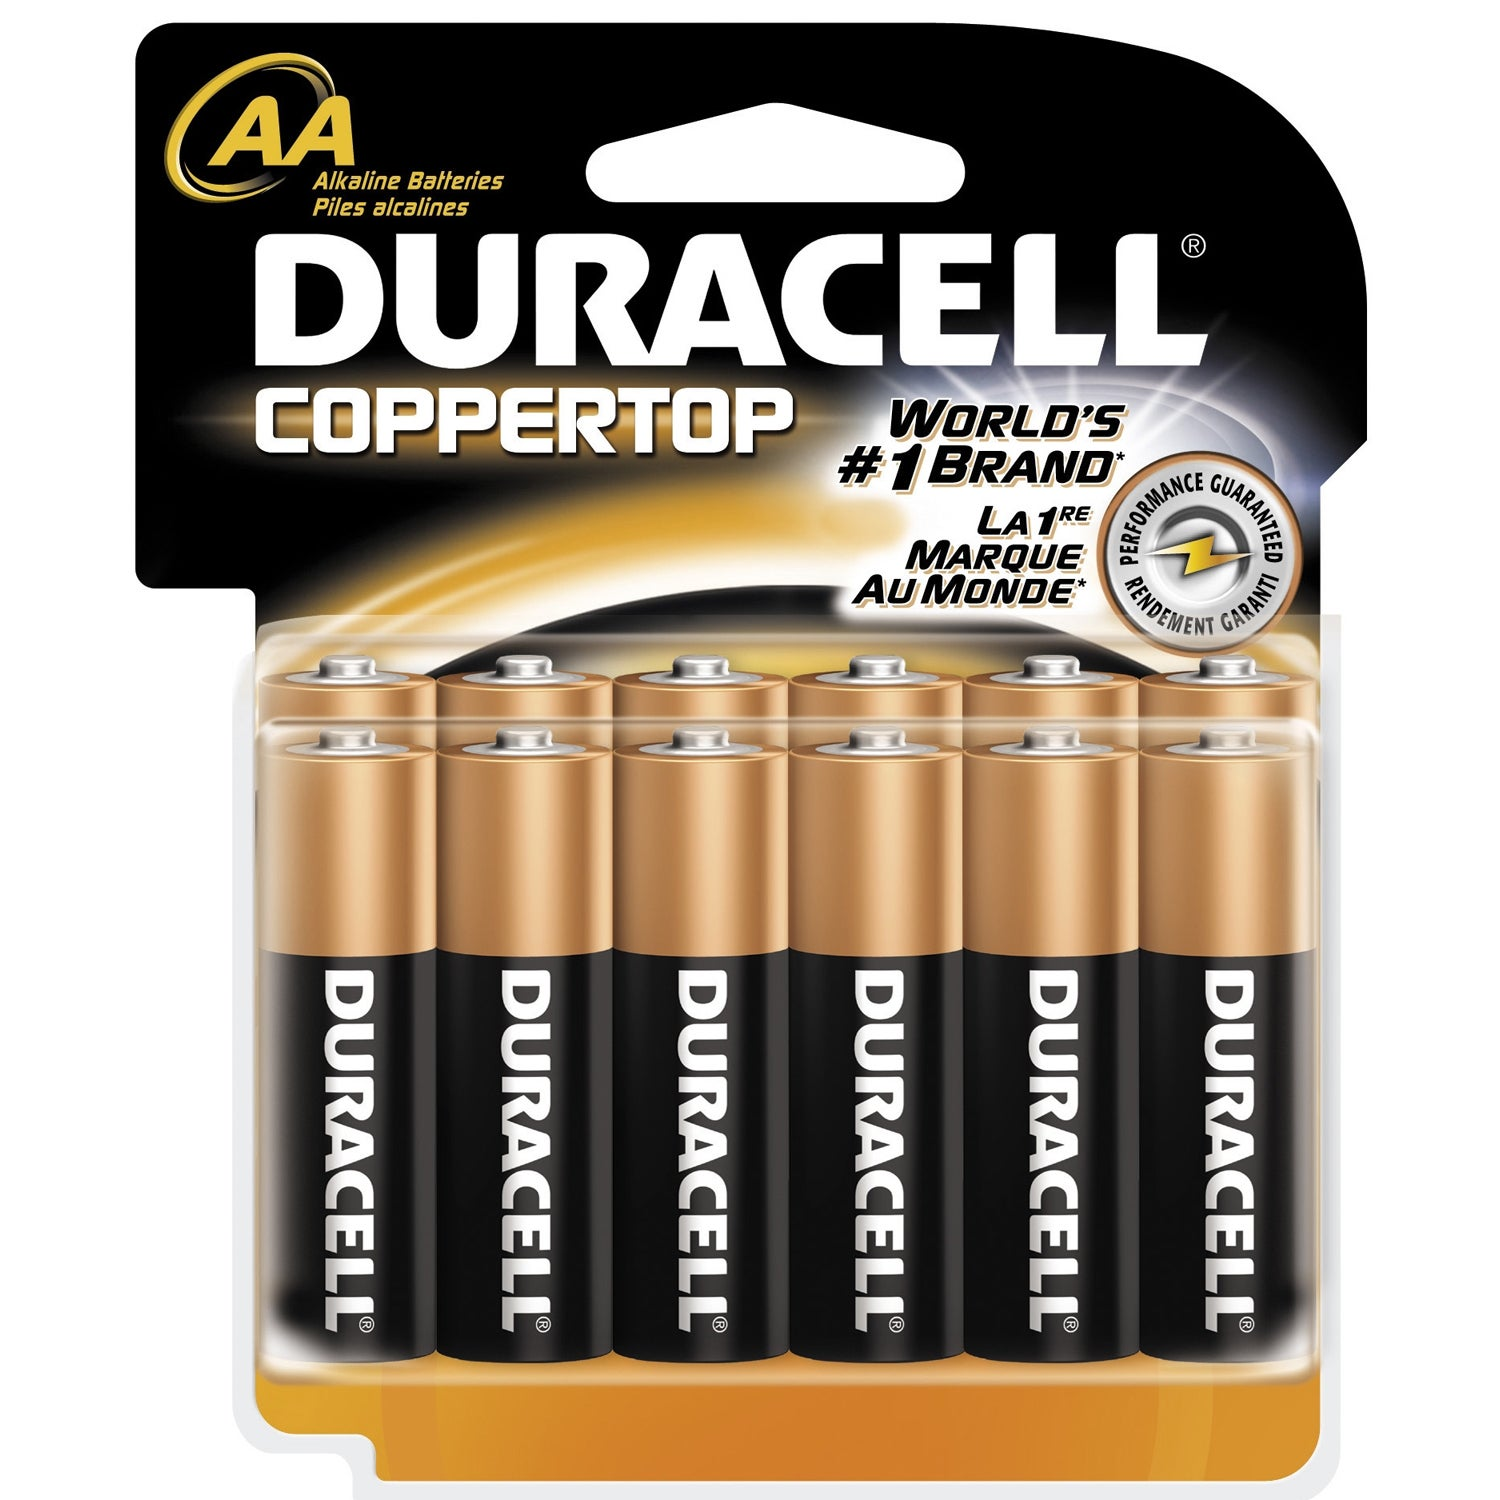 Duracell AA General Purpose Battery (Pack of 12), Grey sm...